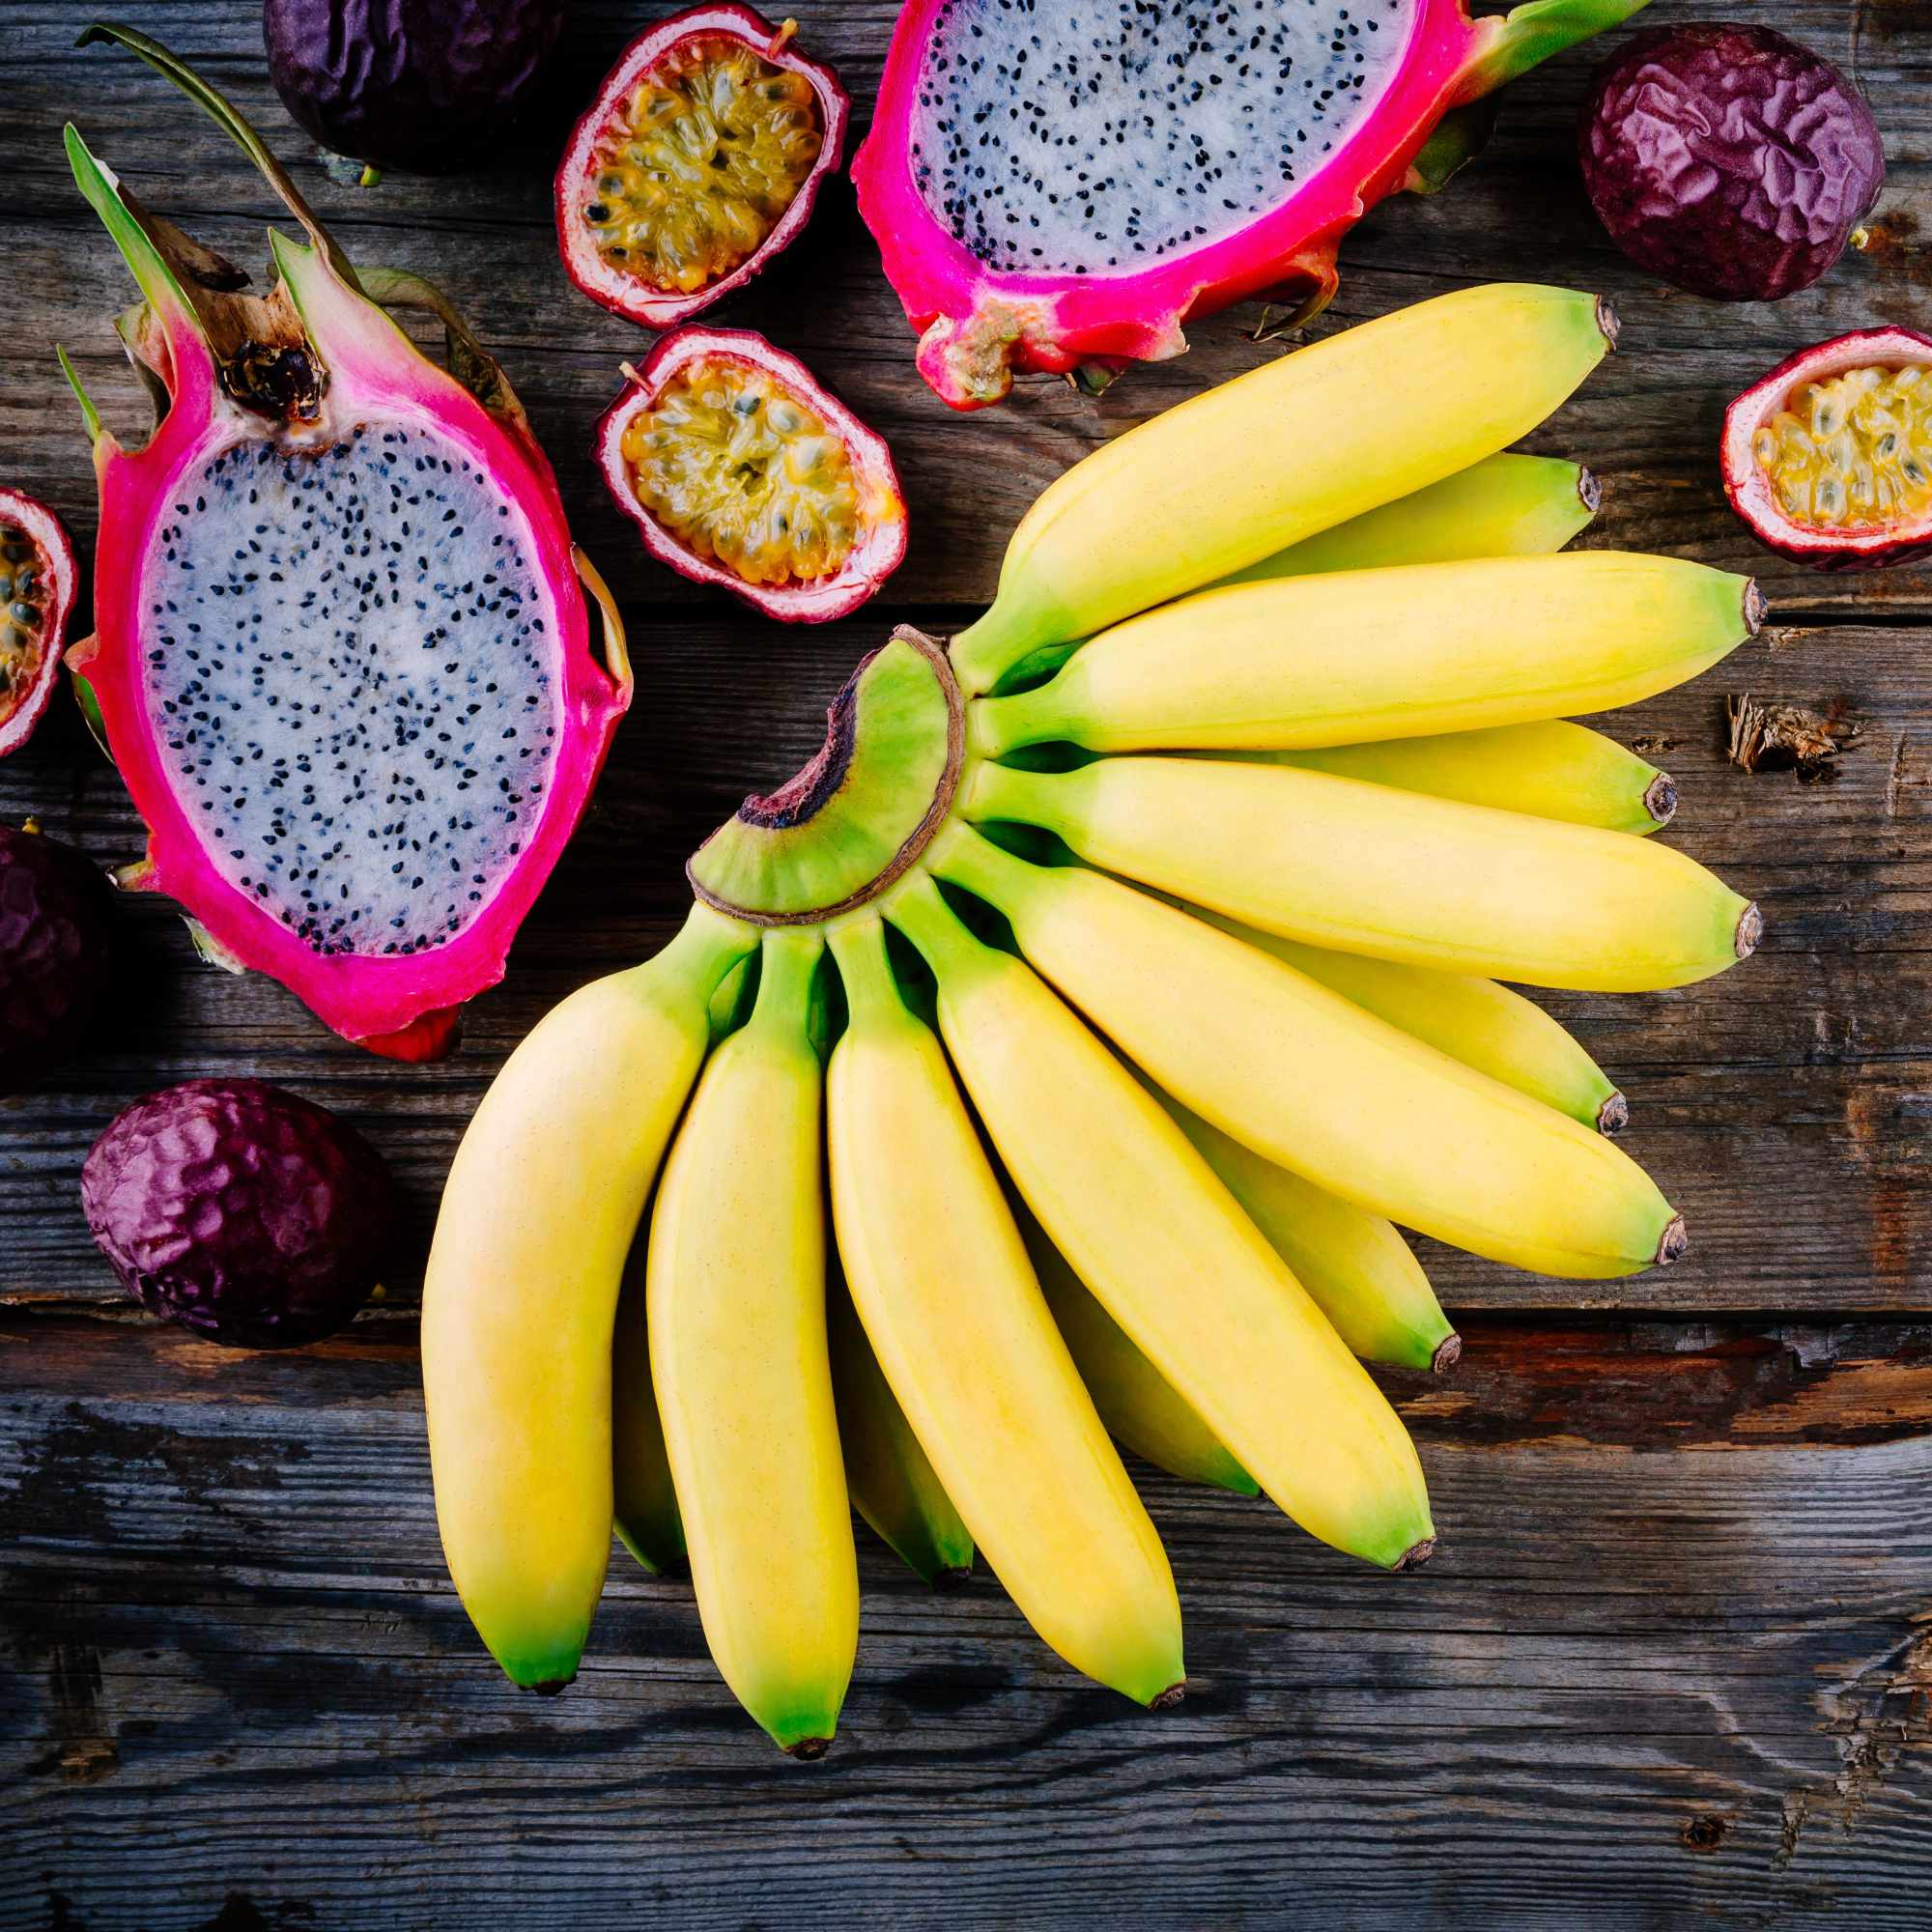 mix-of-tropical-fruits-with-banana-passion-fruit-a-PEVFD79.jpg